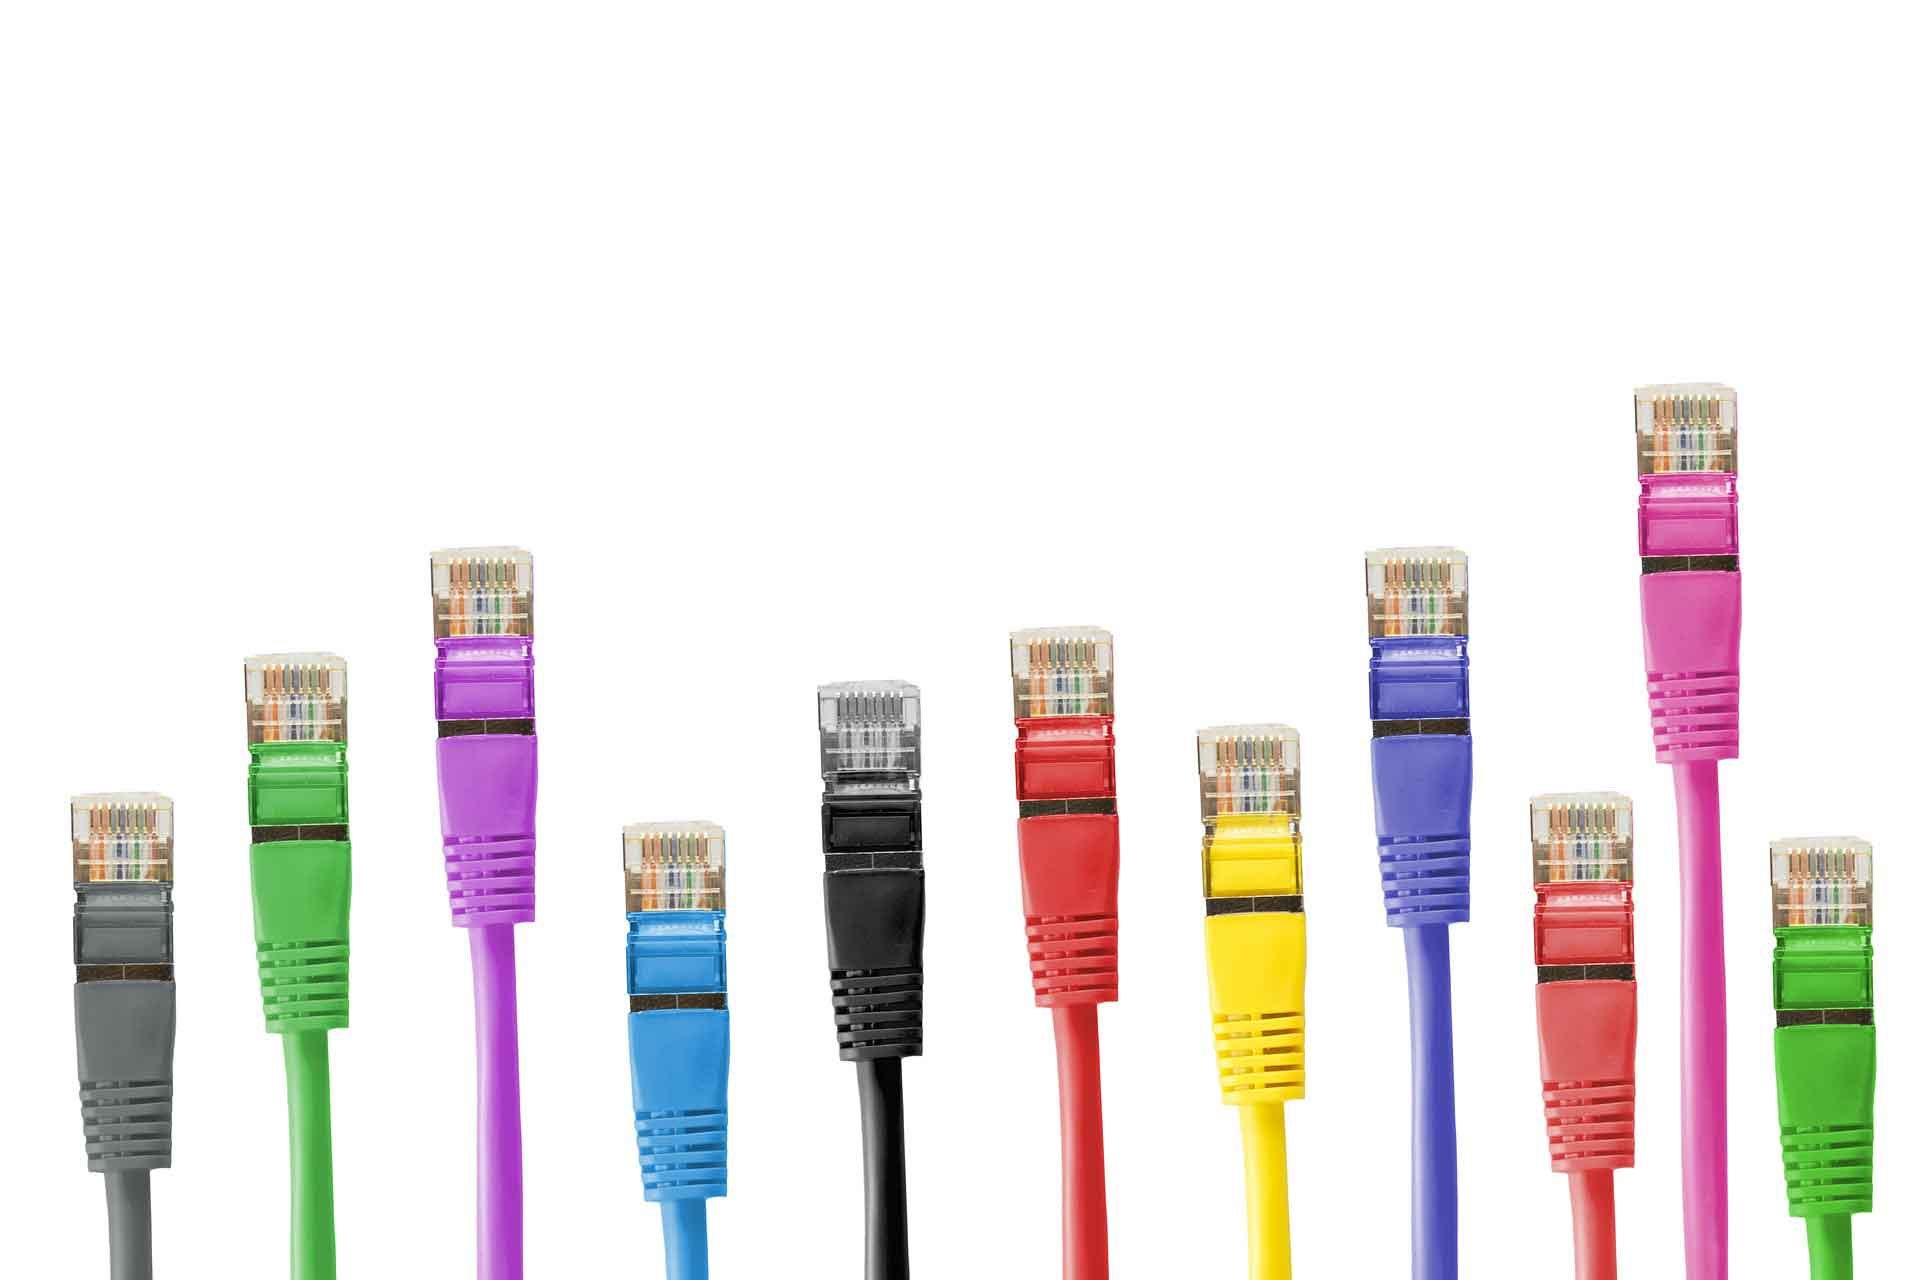 10 Best Ethernet Cables For 2021